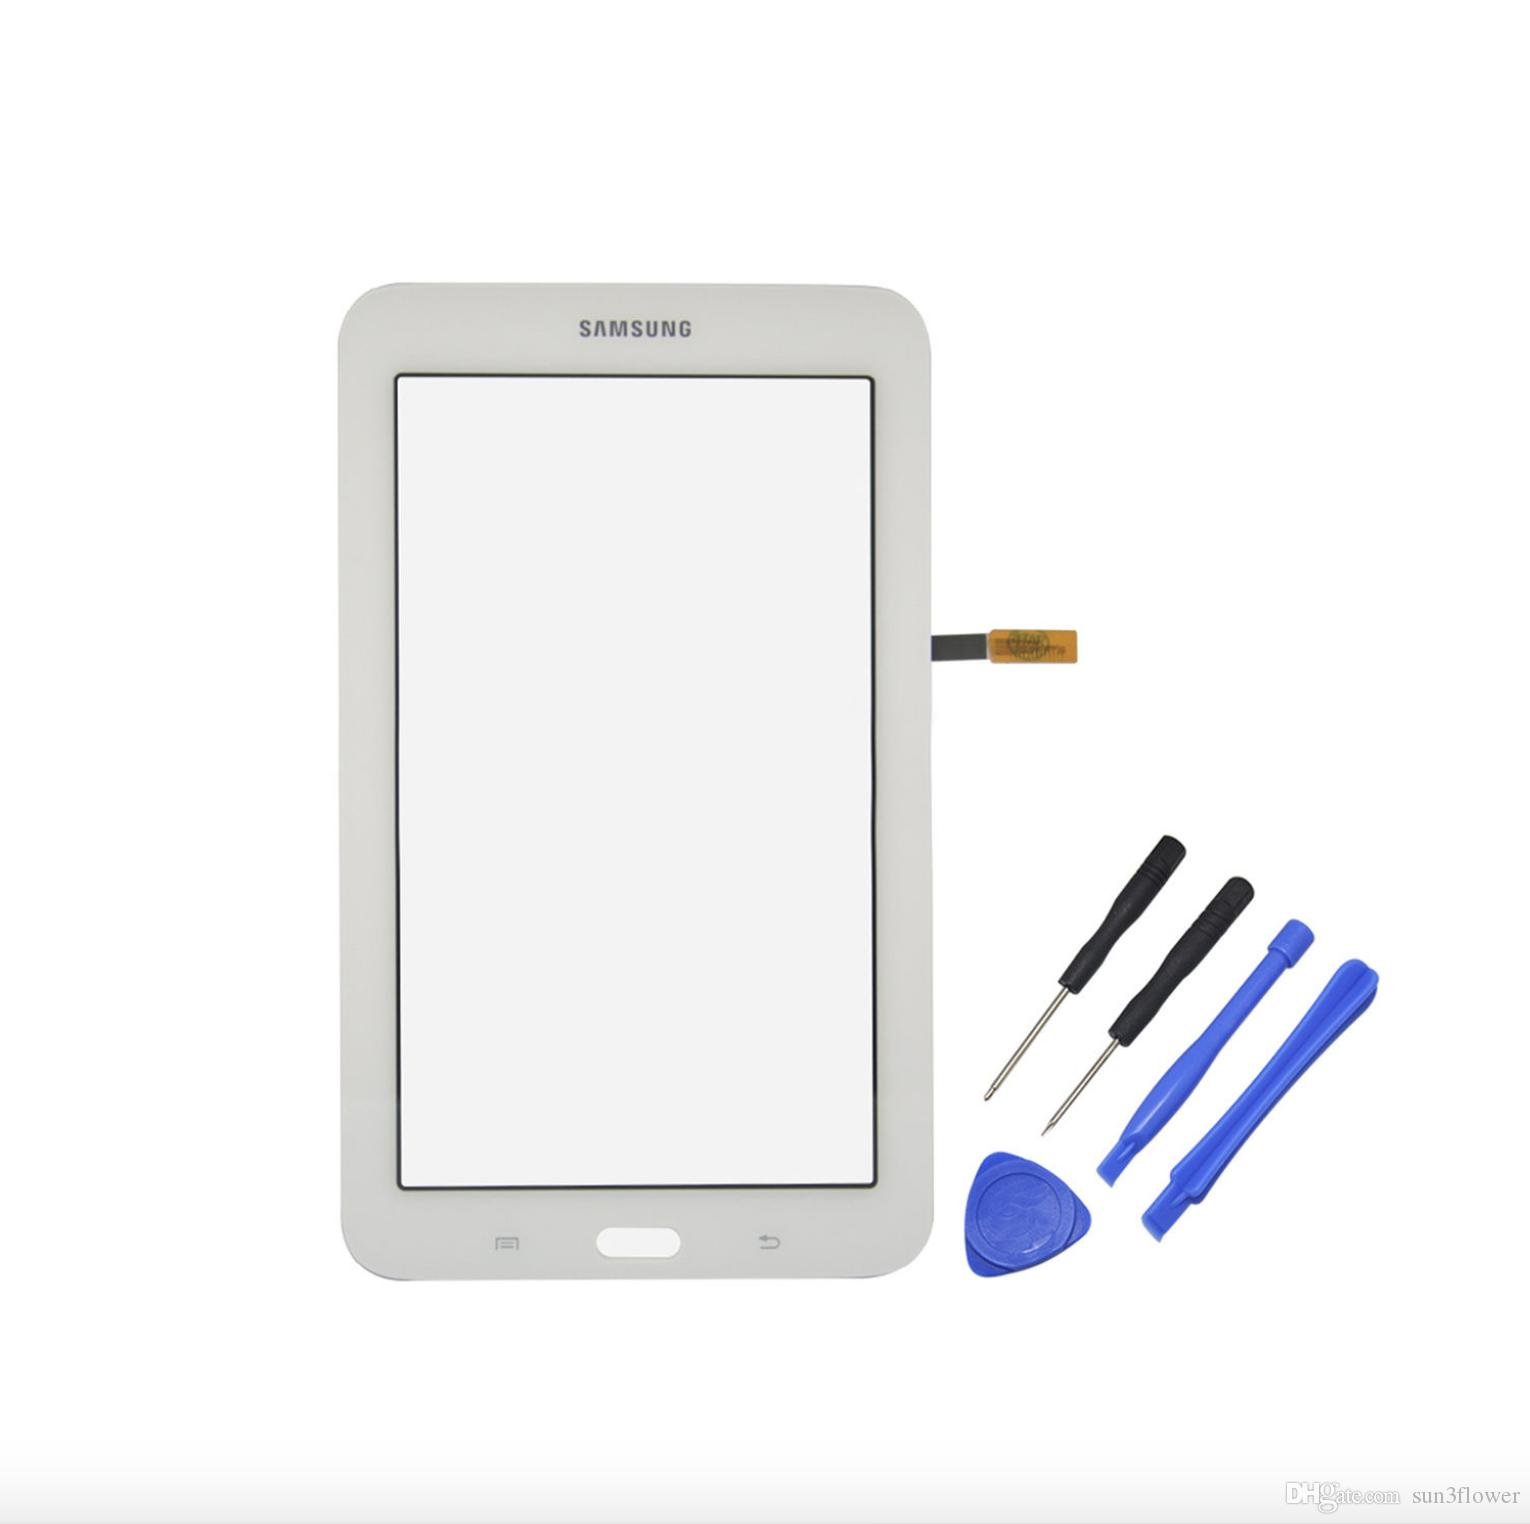 New Digitizer For Samsung Galaxy Tab3 7 0 T110 Wifi Tablet Touch Screen Touch Display Tab 3 Lite 7 0 Sm T110 Wifi T110 puter Parts And ponents